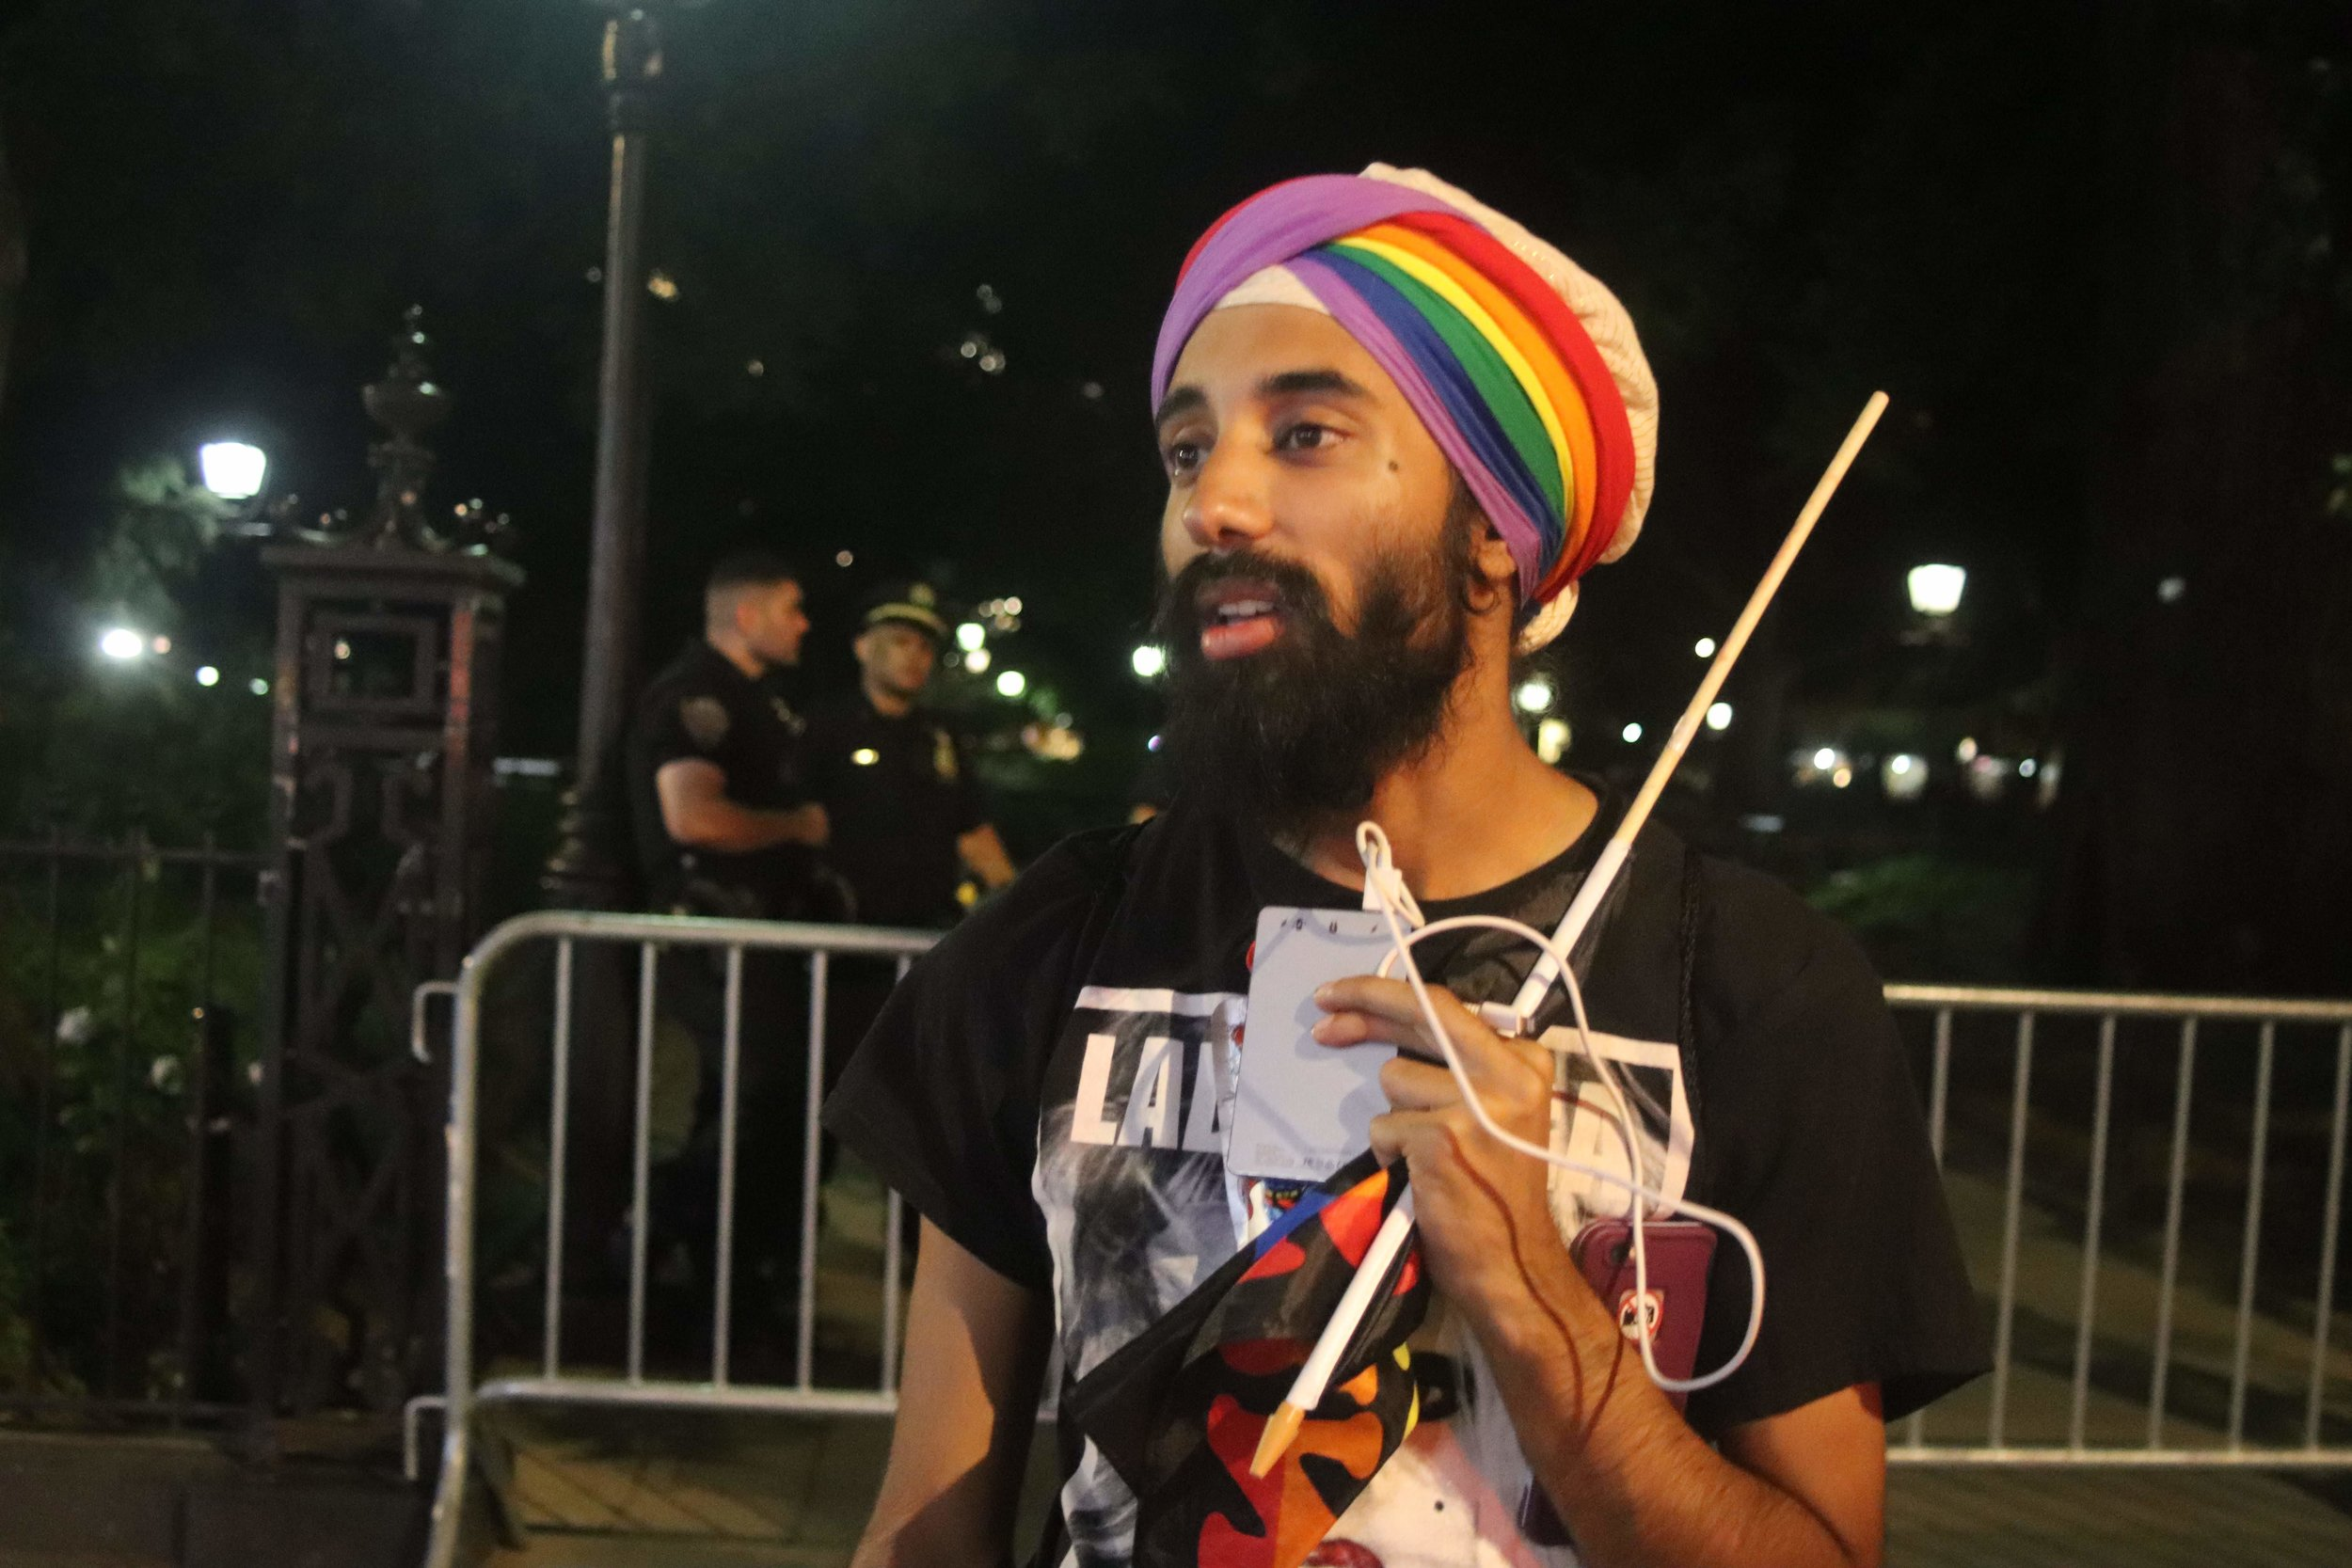 """""""Remember that Stone Wall started with the rebellion of unjust laws. Police enforce laws. Don't think that just because something is a law, it's just."""" - @jasnaamsingh - -Taken approximately five minutes after a heated argument with two police officers (shown in back) about lies the NYPD tell New York citizens. The argument continued afterwards."""